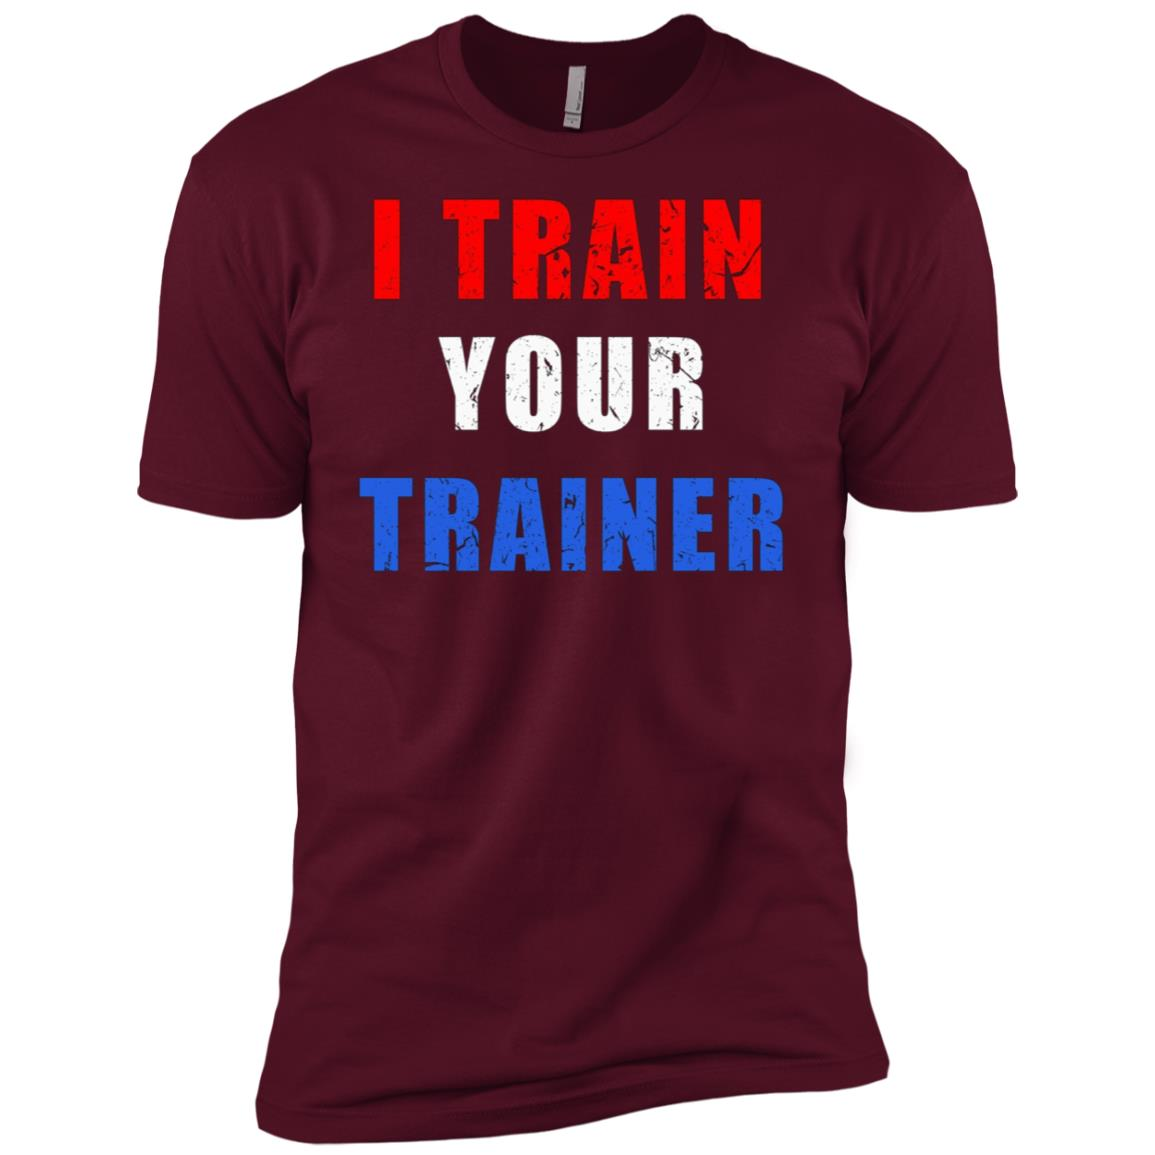 I Train Your Trainer Funny Gym Workout Tee Men Short Sleeve T-Shirt